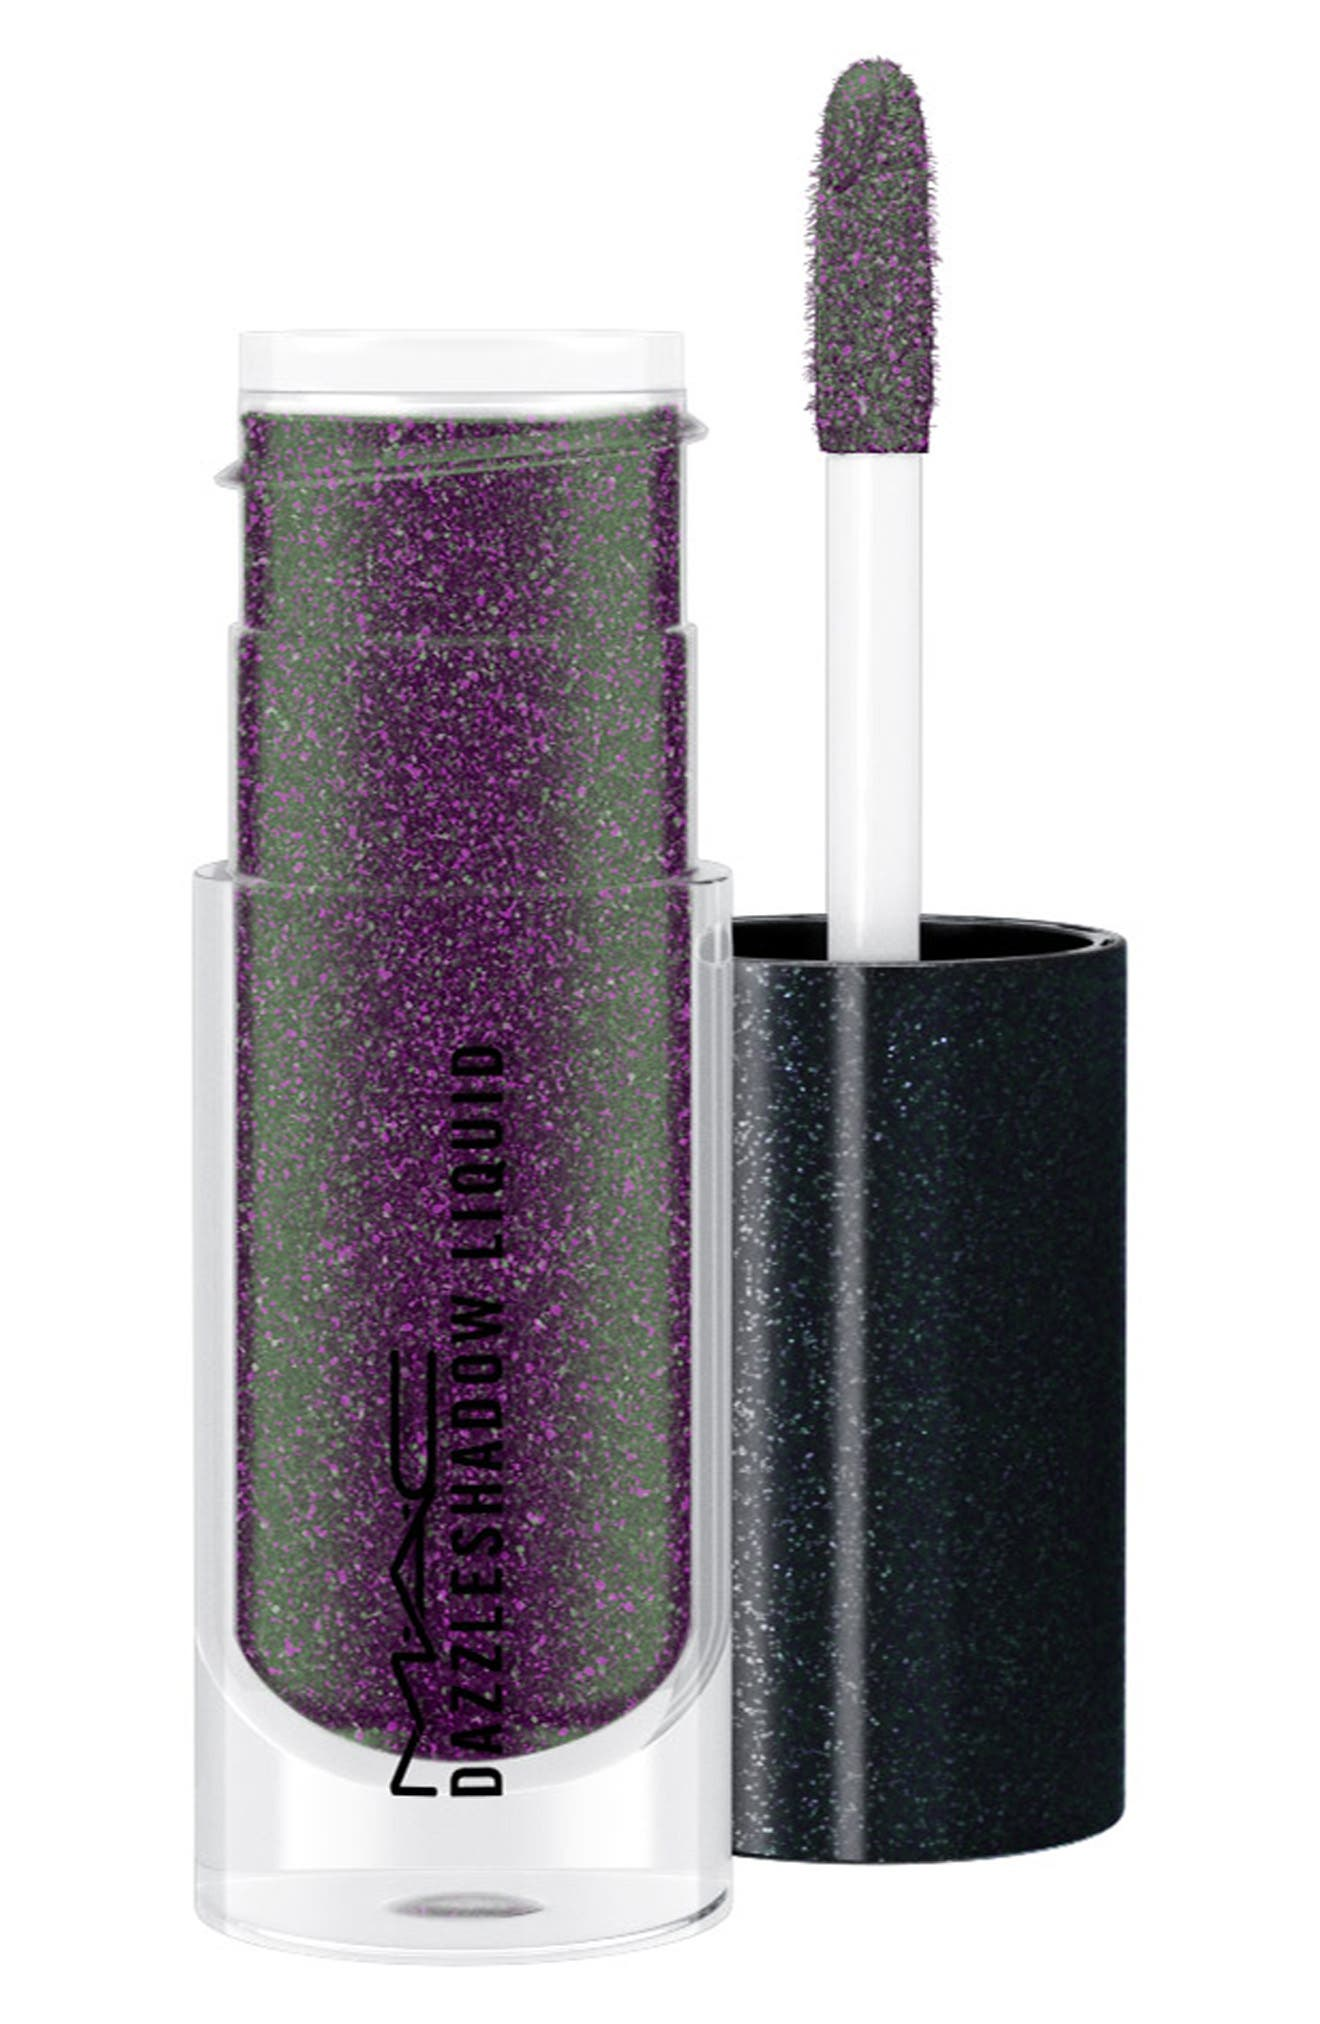 MAC COSMETICS MAC Dazzleshadow Liquid Eyeshadow, Main, color, PANTHERTIZED (SHIMMER)